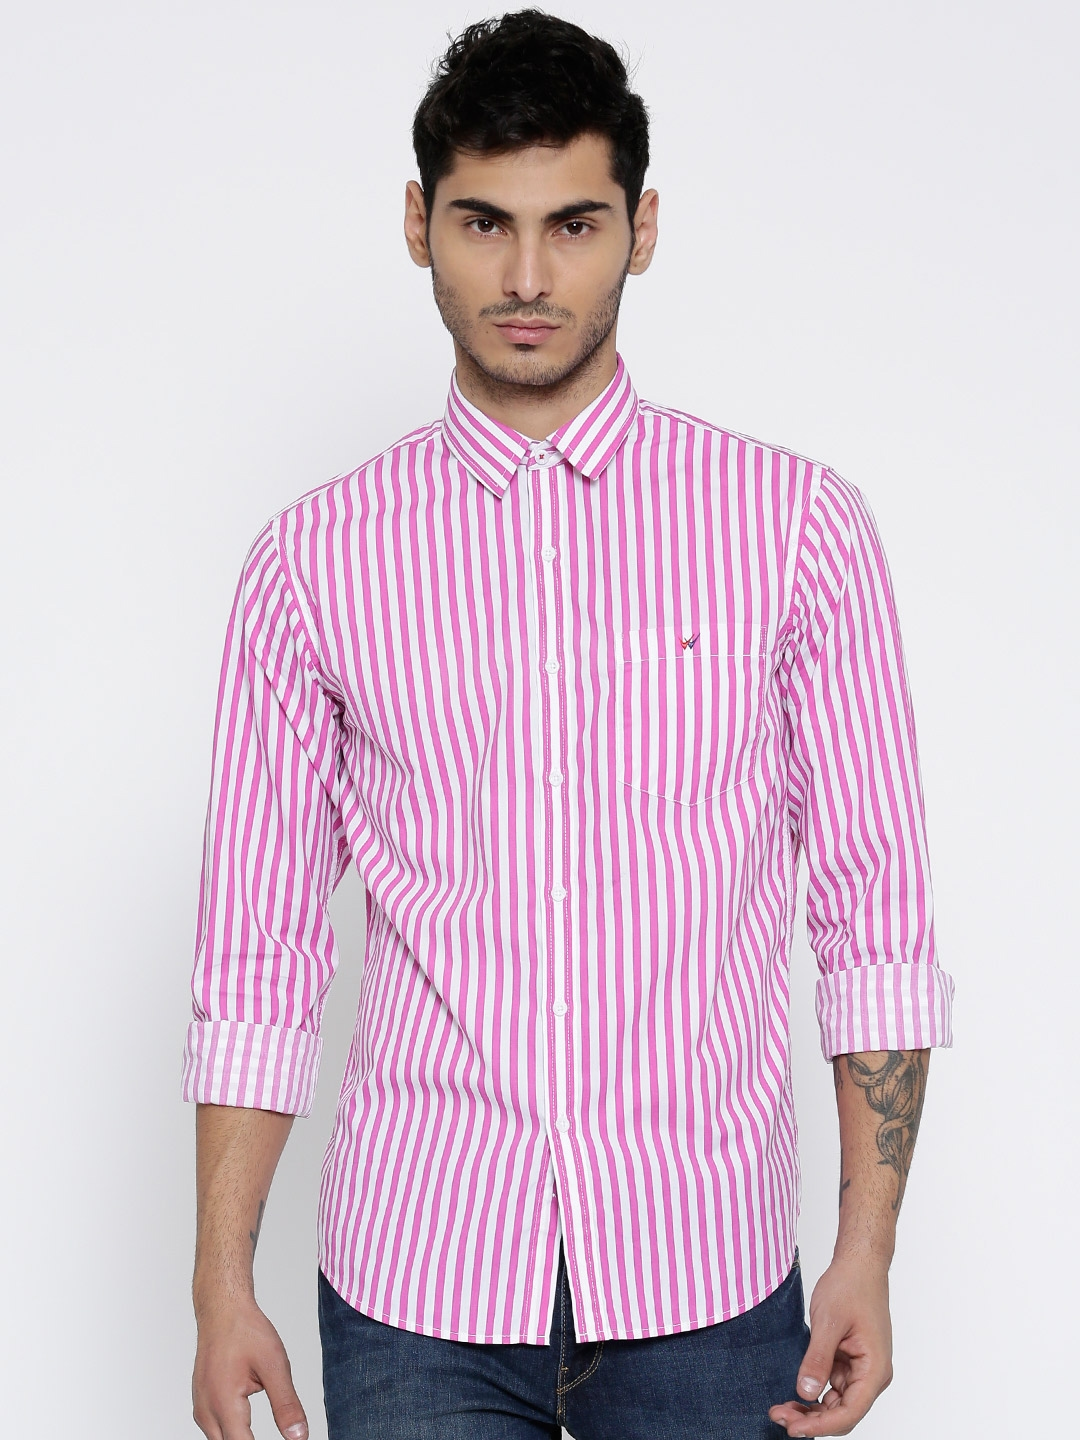 Wear to what with pink striped shirt advise to wear for autumn in 2019